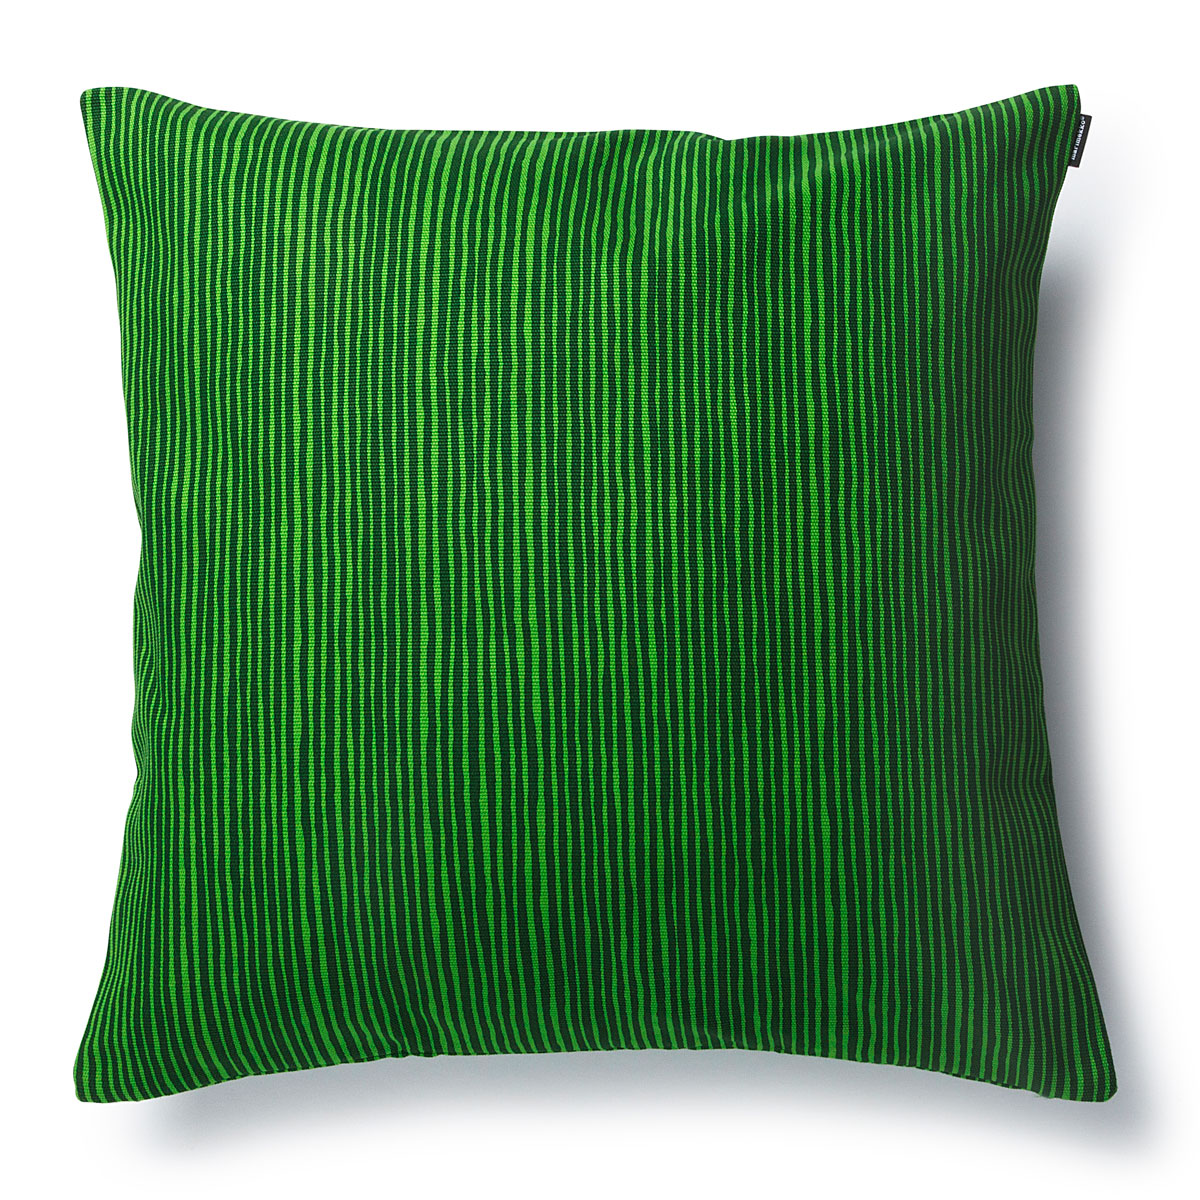 marimekko varvunraita green throw pillow  holiday home accents - marimekko varvunraita green throw pillow